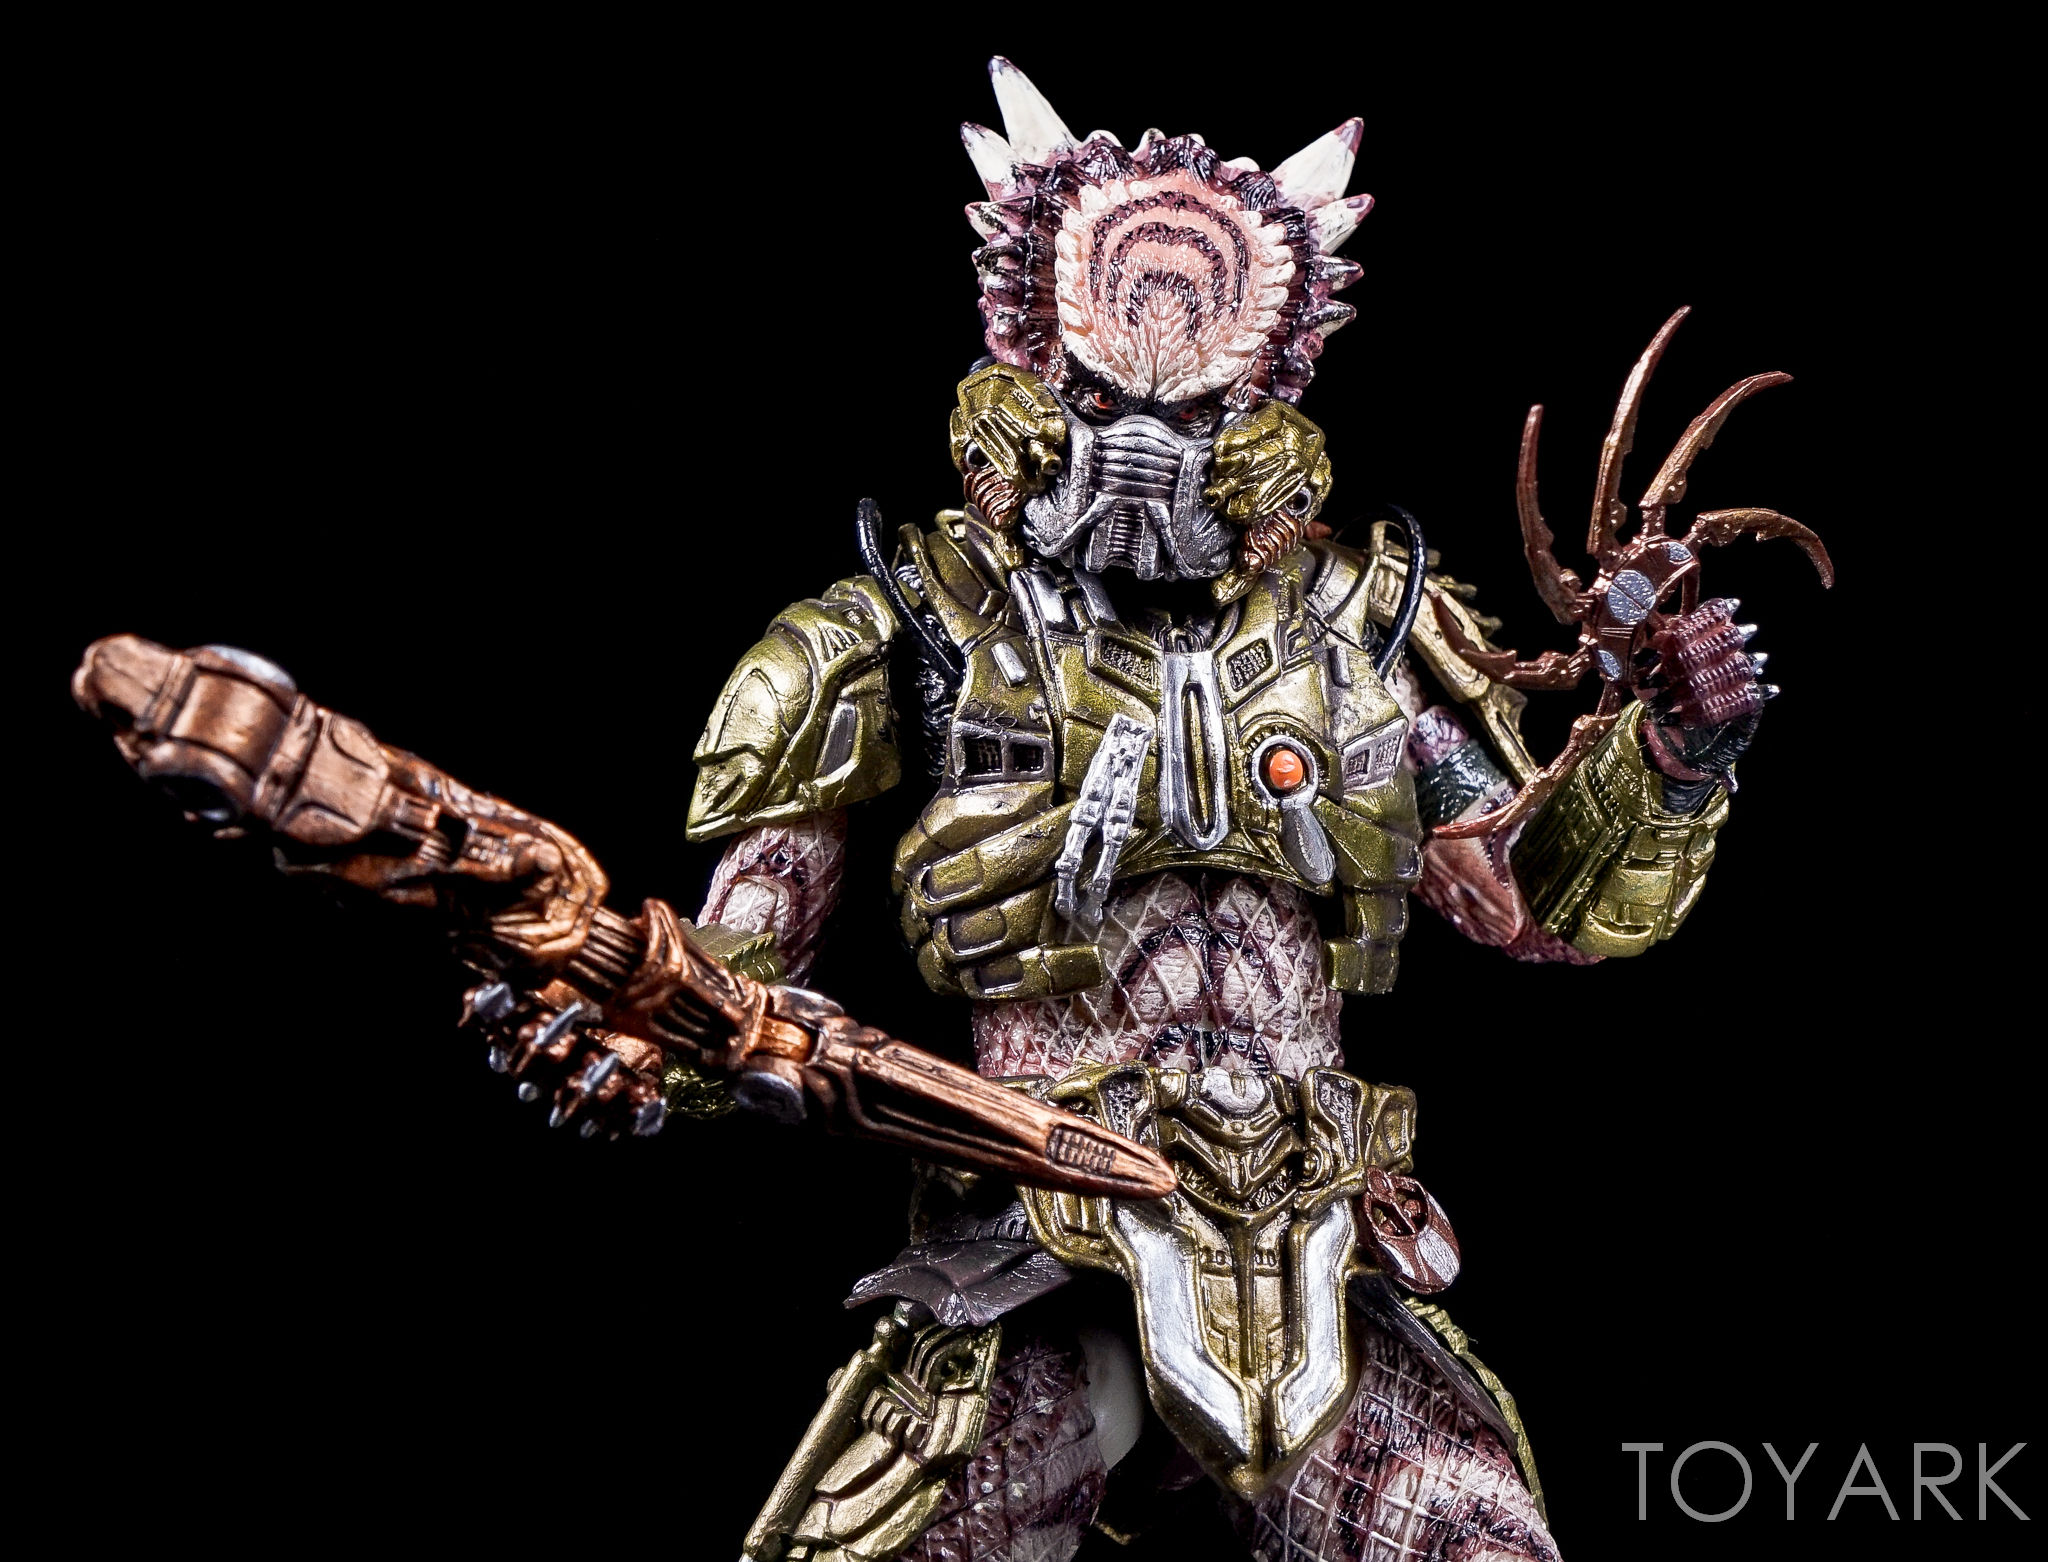 http://news.toyark.com/wp-content/uploads/sites/4/2016/10/Predator-Series-16-NECA-123.jpg